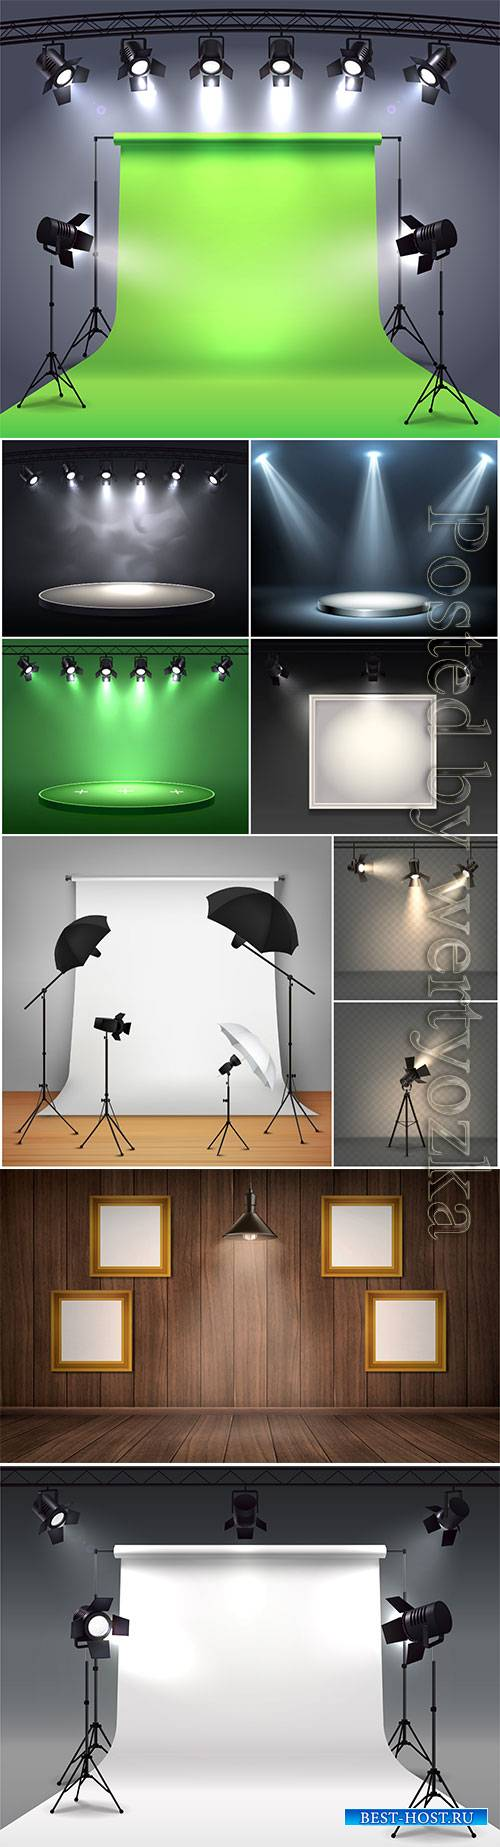 Spotlights realistic vector composition